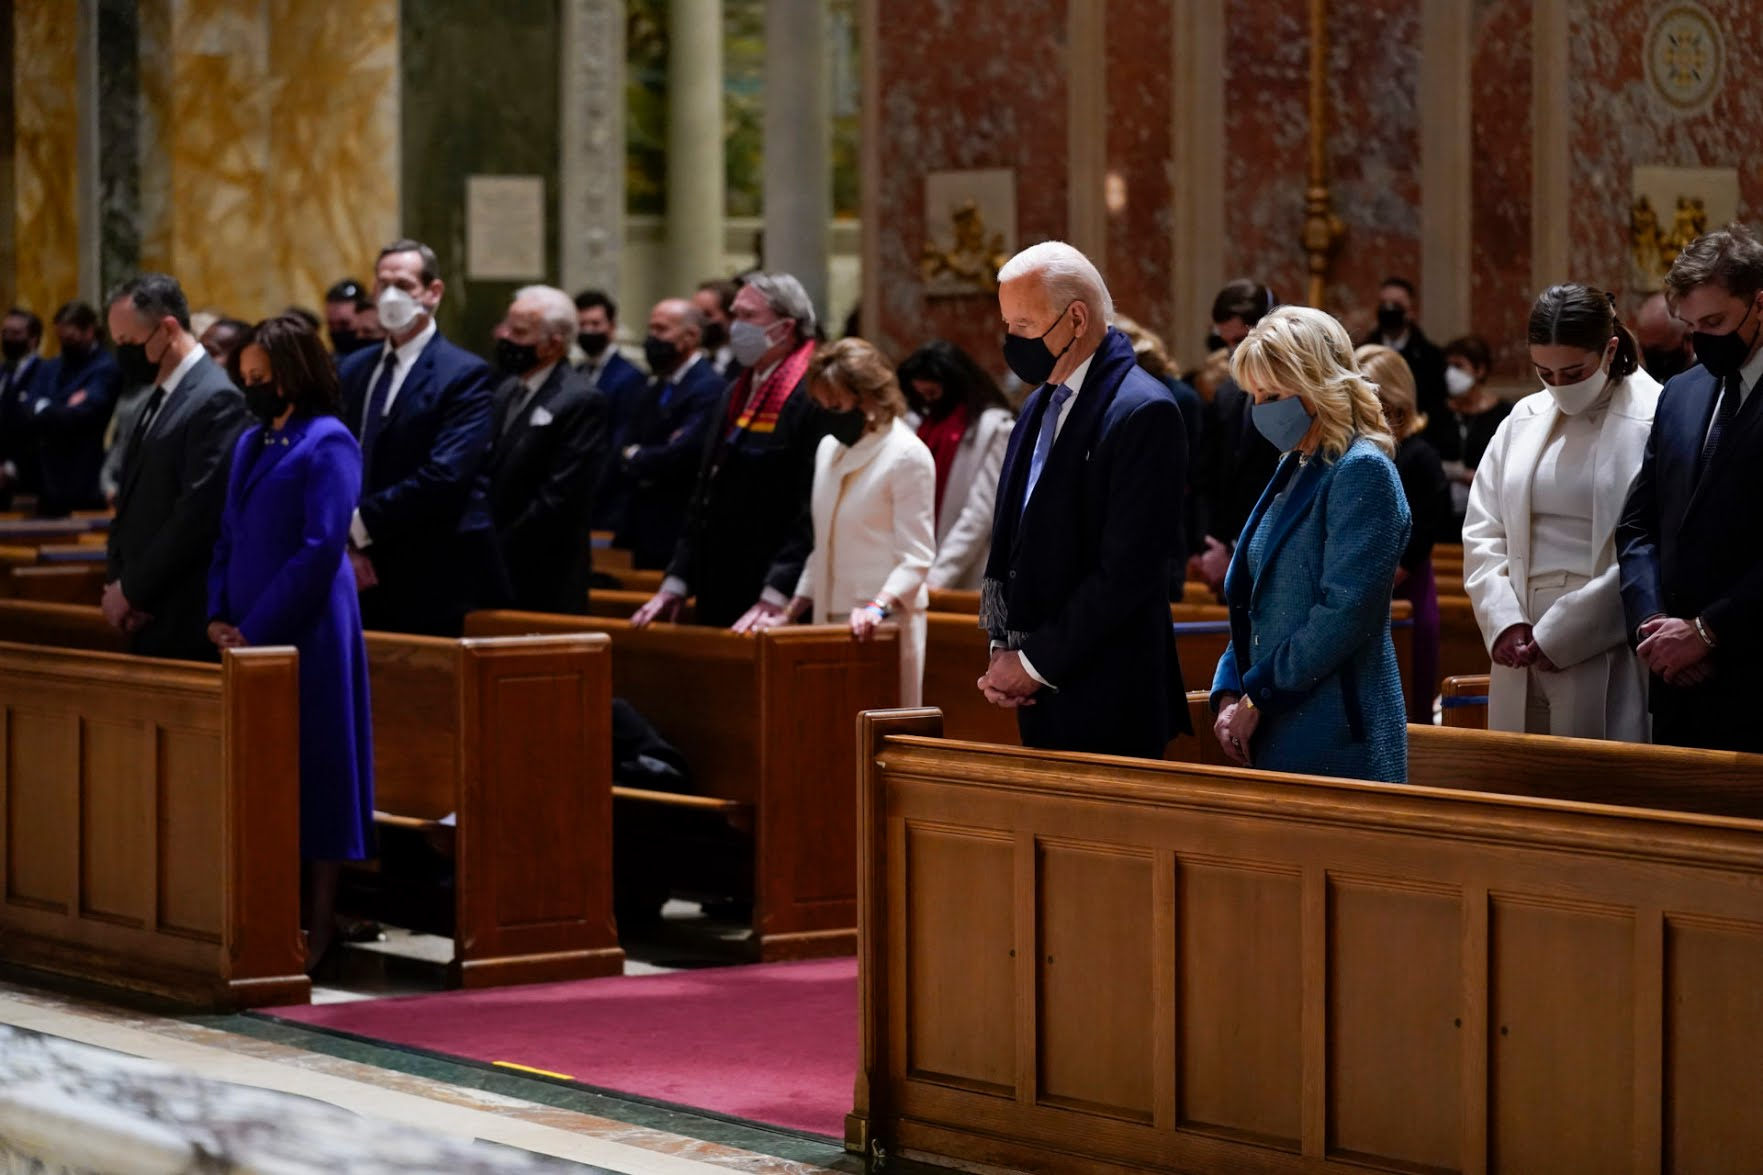 The Bidens attend Mass at the Cathedral of St. Matthew the Apostle on Wednesday morning ahead of the inauguration ceremony. Harris and her husband Doug Emhoff are at left. (Evan Vucci/AP)